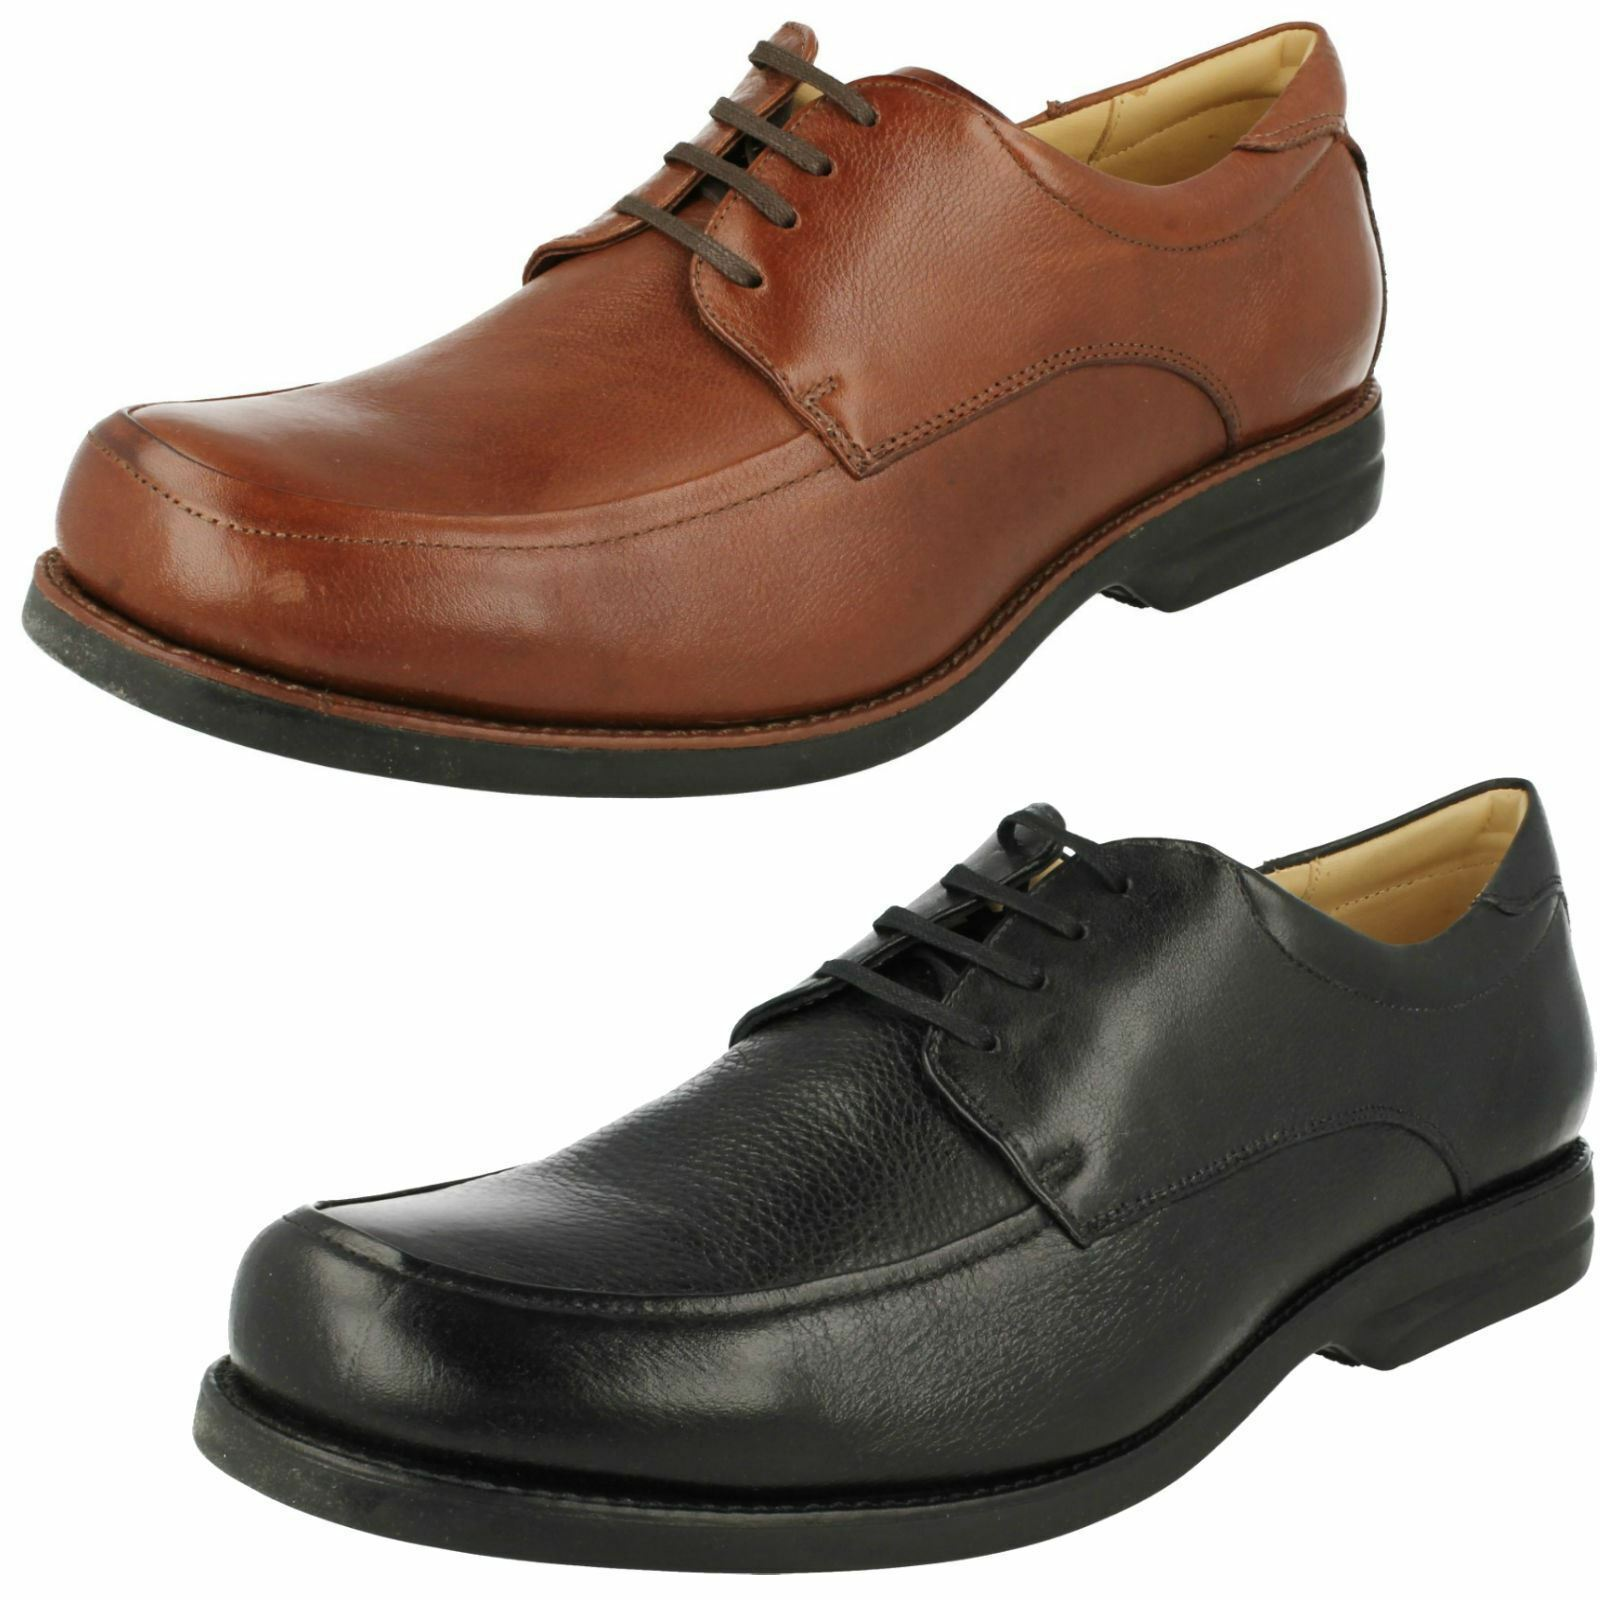 ANATOMIC GEL MENS LACE UP BLACK BROWN LEATHER FORMAL WORK SMART Schuhe ANAPOLIS